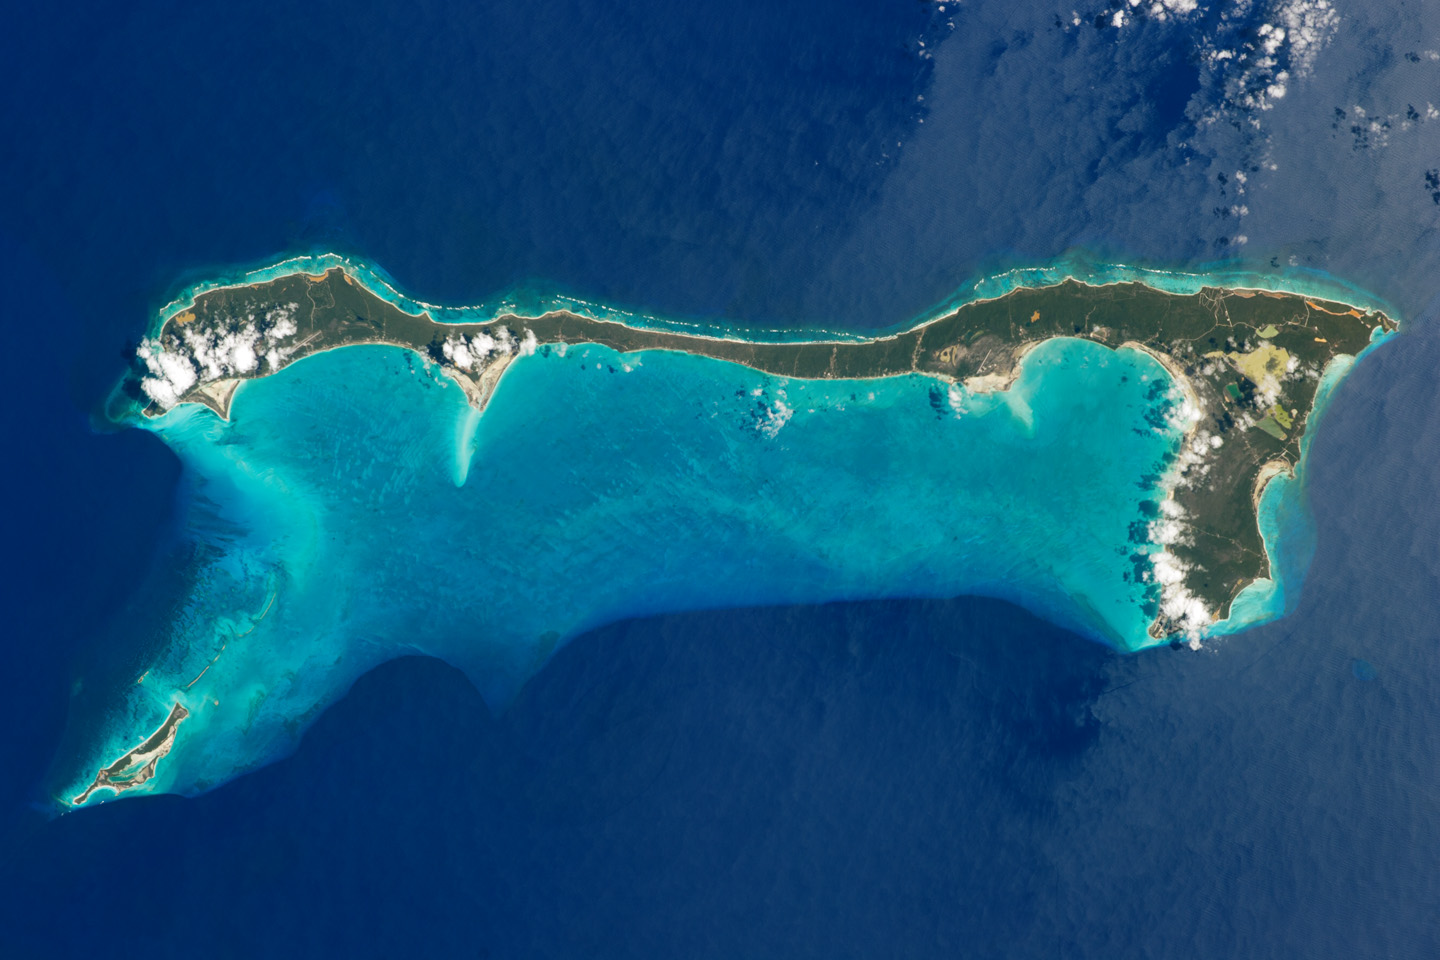 Today's Image of the Day comes thanks to the NASA Earth Observatory and features a look at the famous Cat Island in the Bahamas.